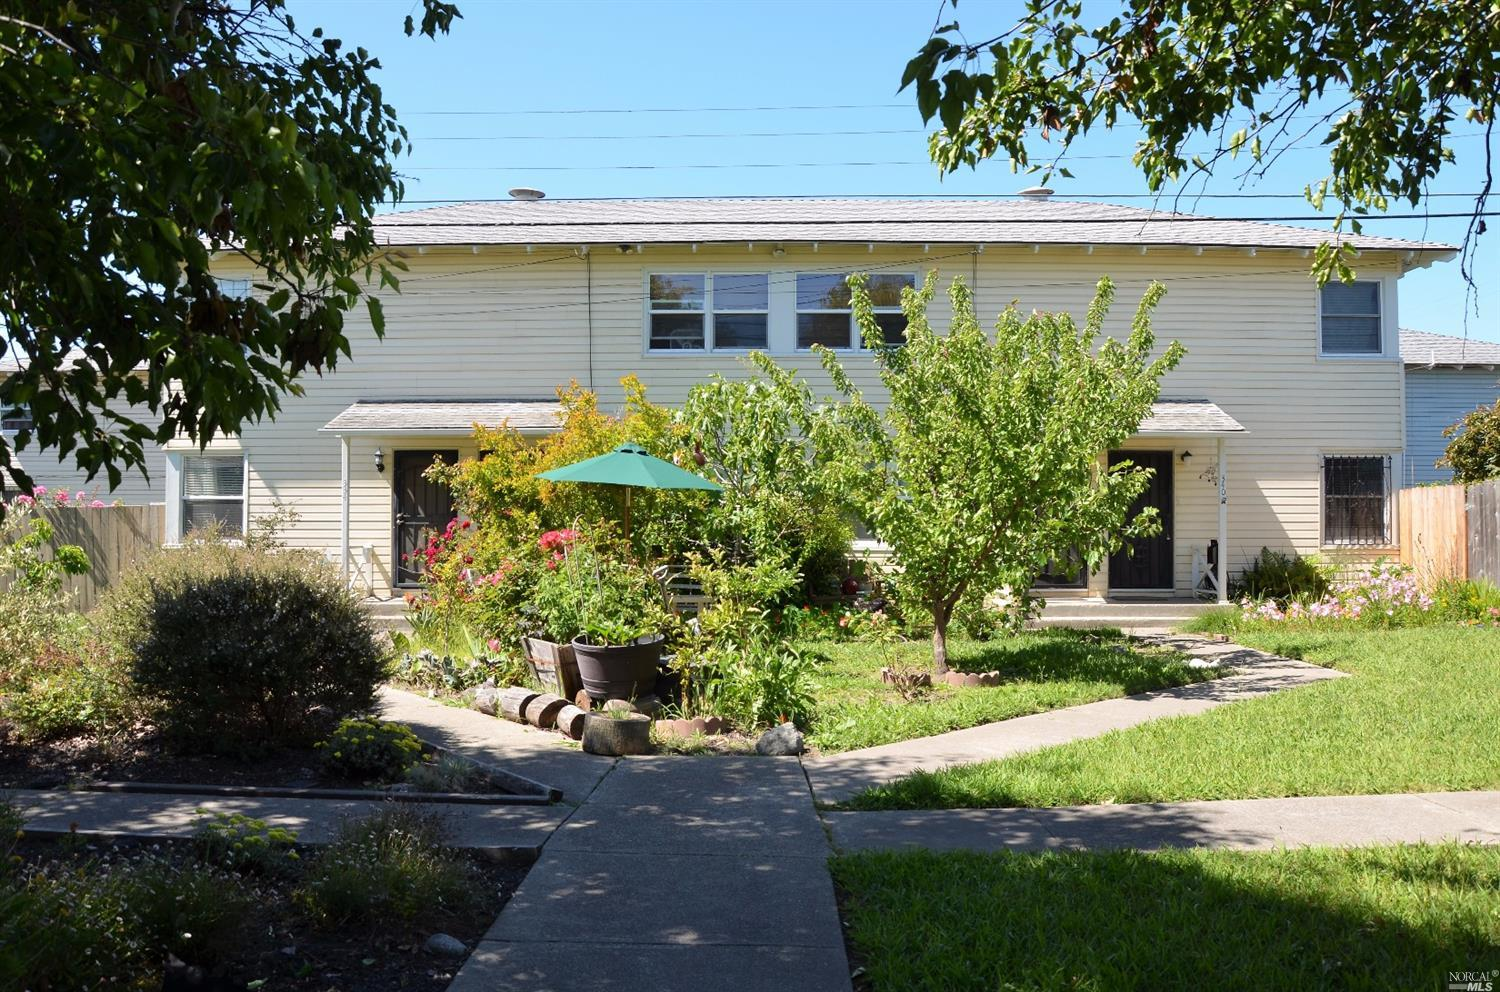 336 West Bissell avenue Richmond, CA 94801 - MLS #: 21710835